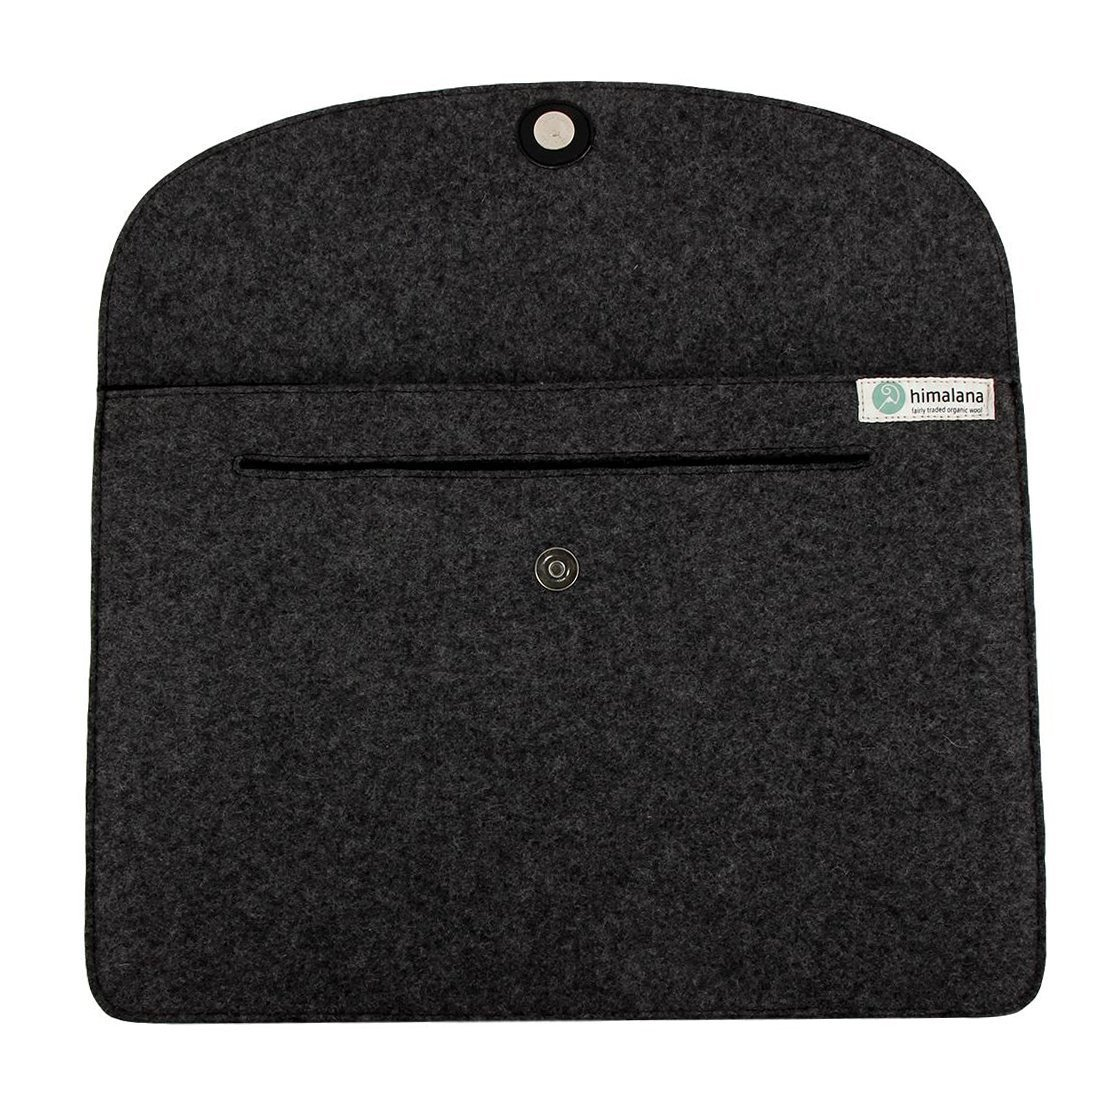 Mojopanda Virgin Organic Wool Felt 13-13.5 Inch Macbooks, Laptop Grey Sleeve Case Carrying Bag With 2 Back Pouches For Mobile Phones And An Inner Packet For Tab, Ipad Or Power Chord. by MOJO PANDA (Image #6)